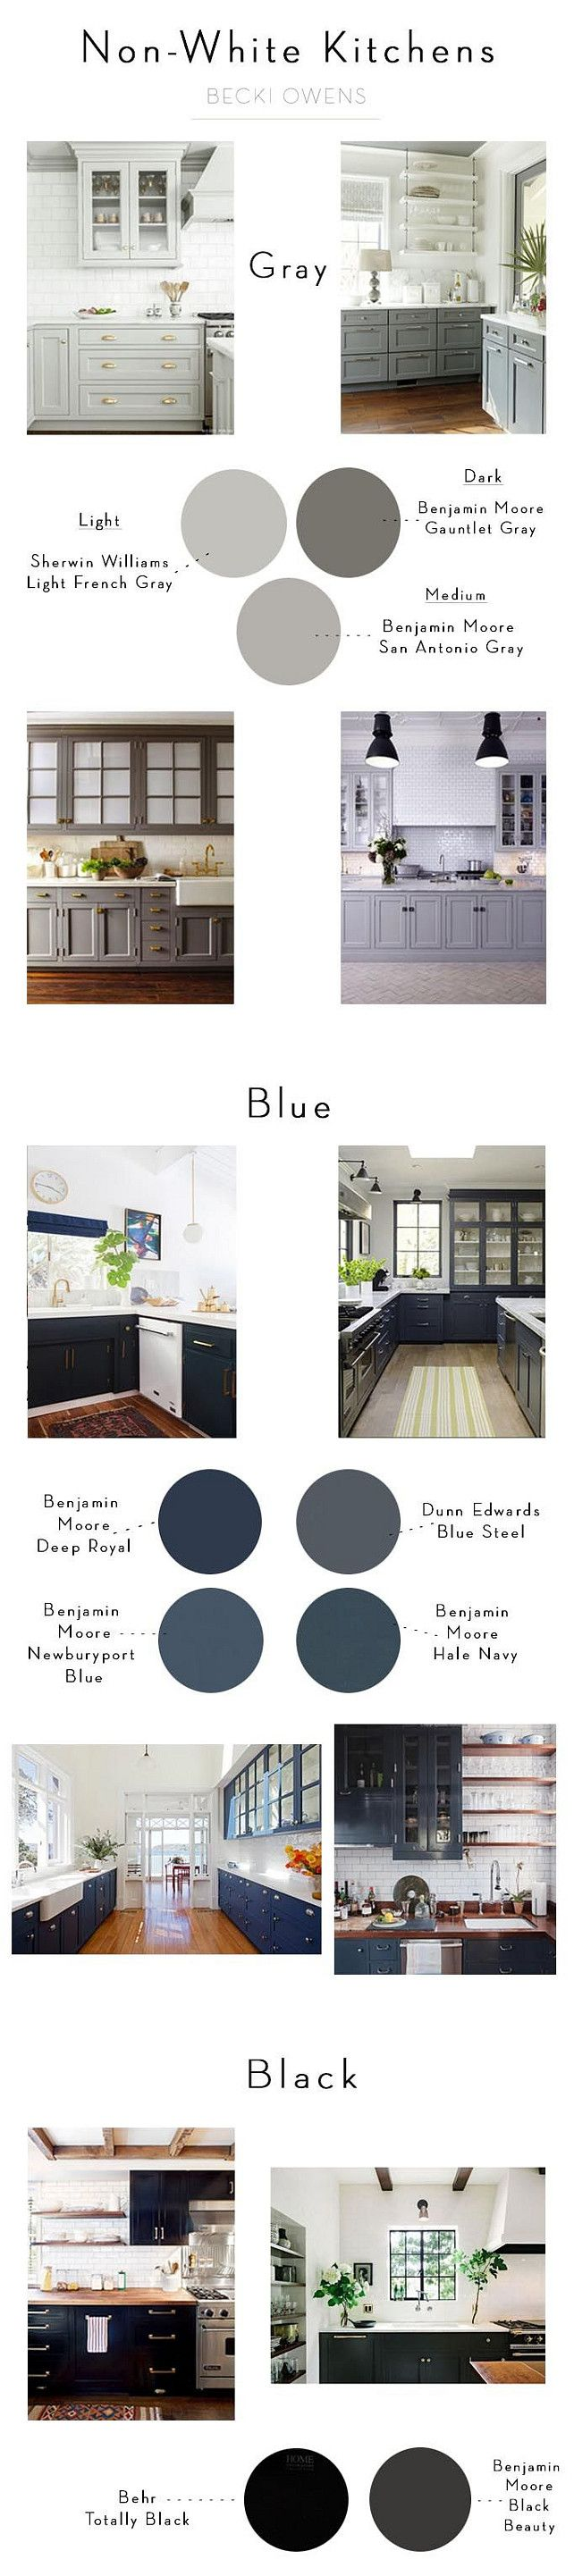 Interior Design Ideas · Kitchen RedoKitchen RemodelBlack Kitchen PaintNavy KitchenGrey  Kitchen CabinetsBlack CabinetsWhite ...